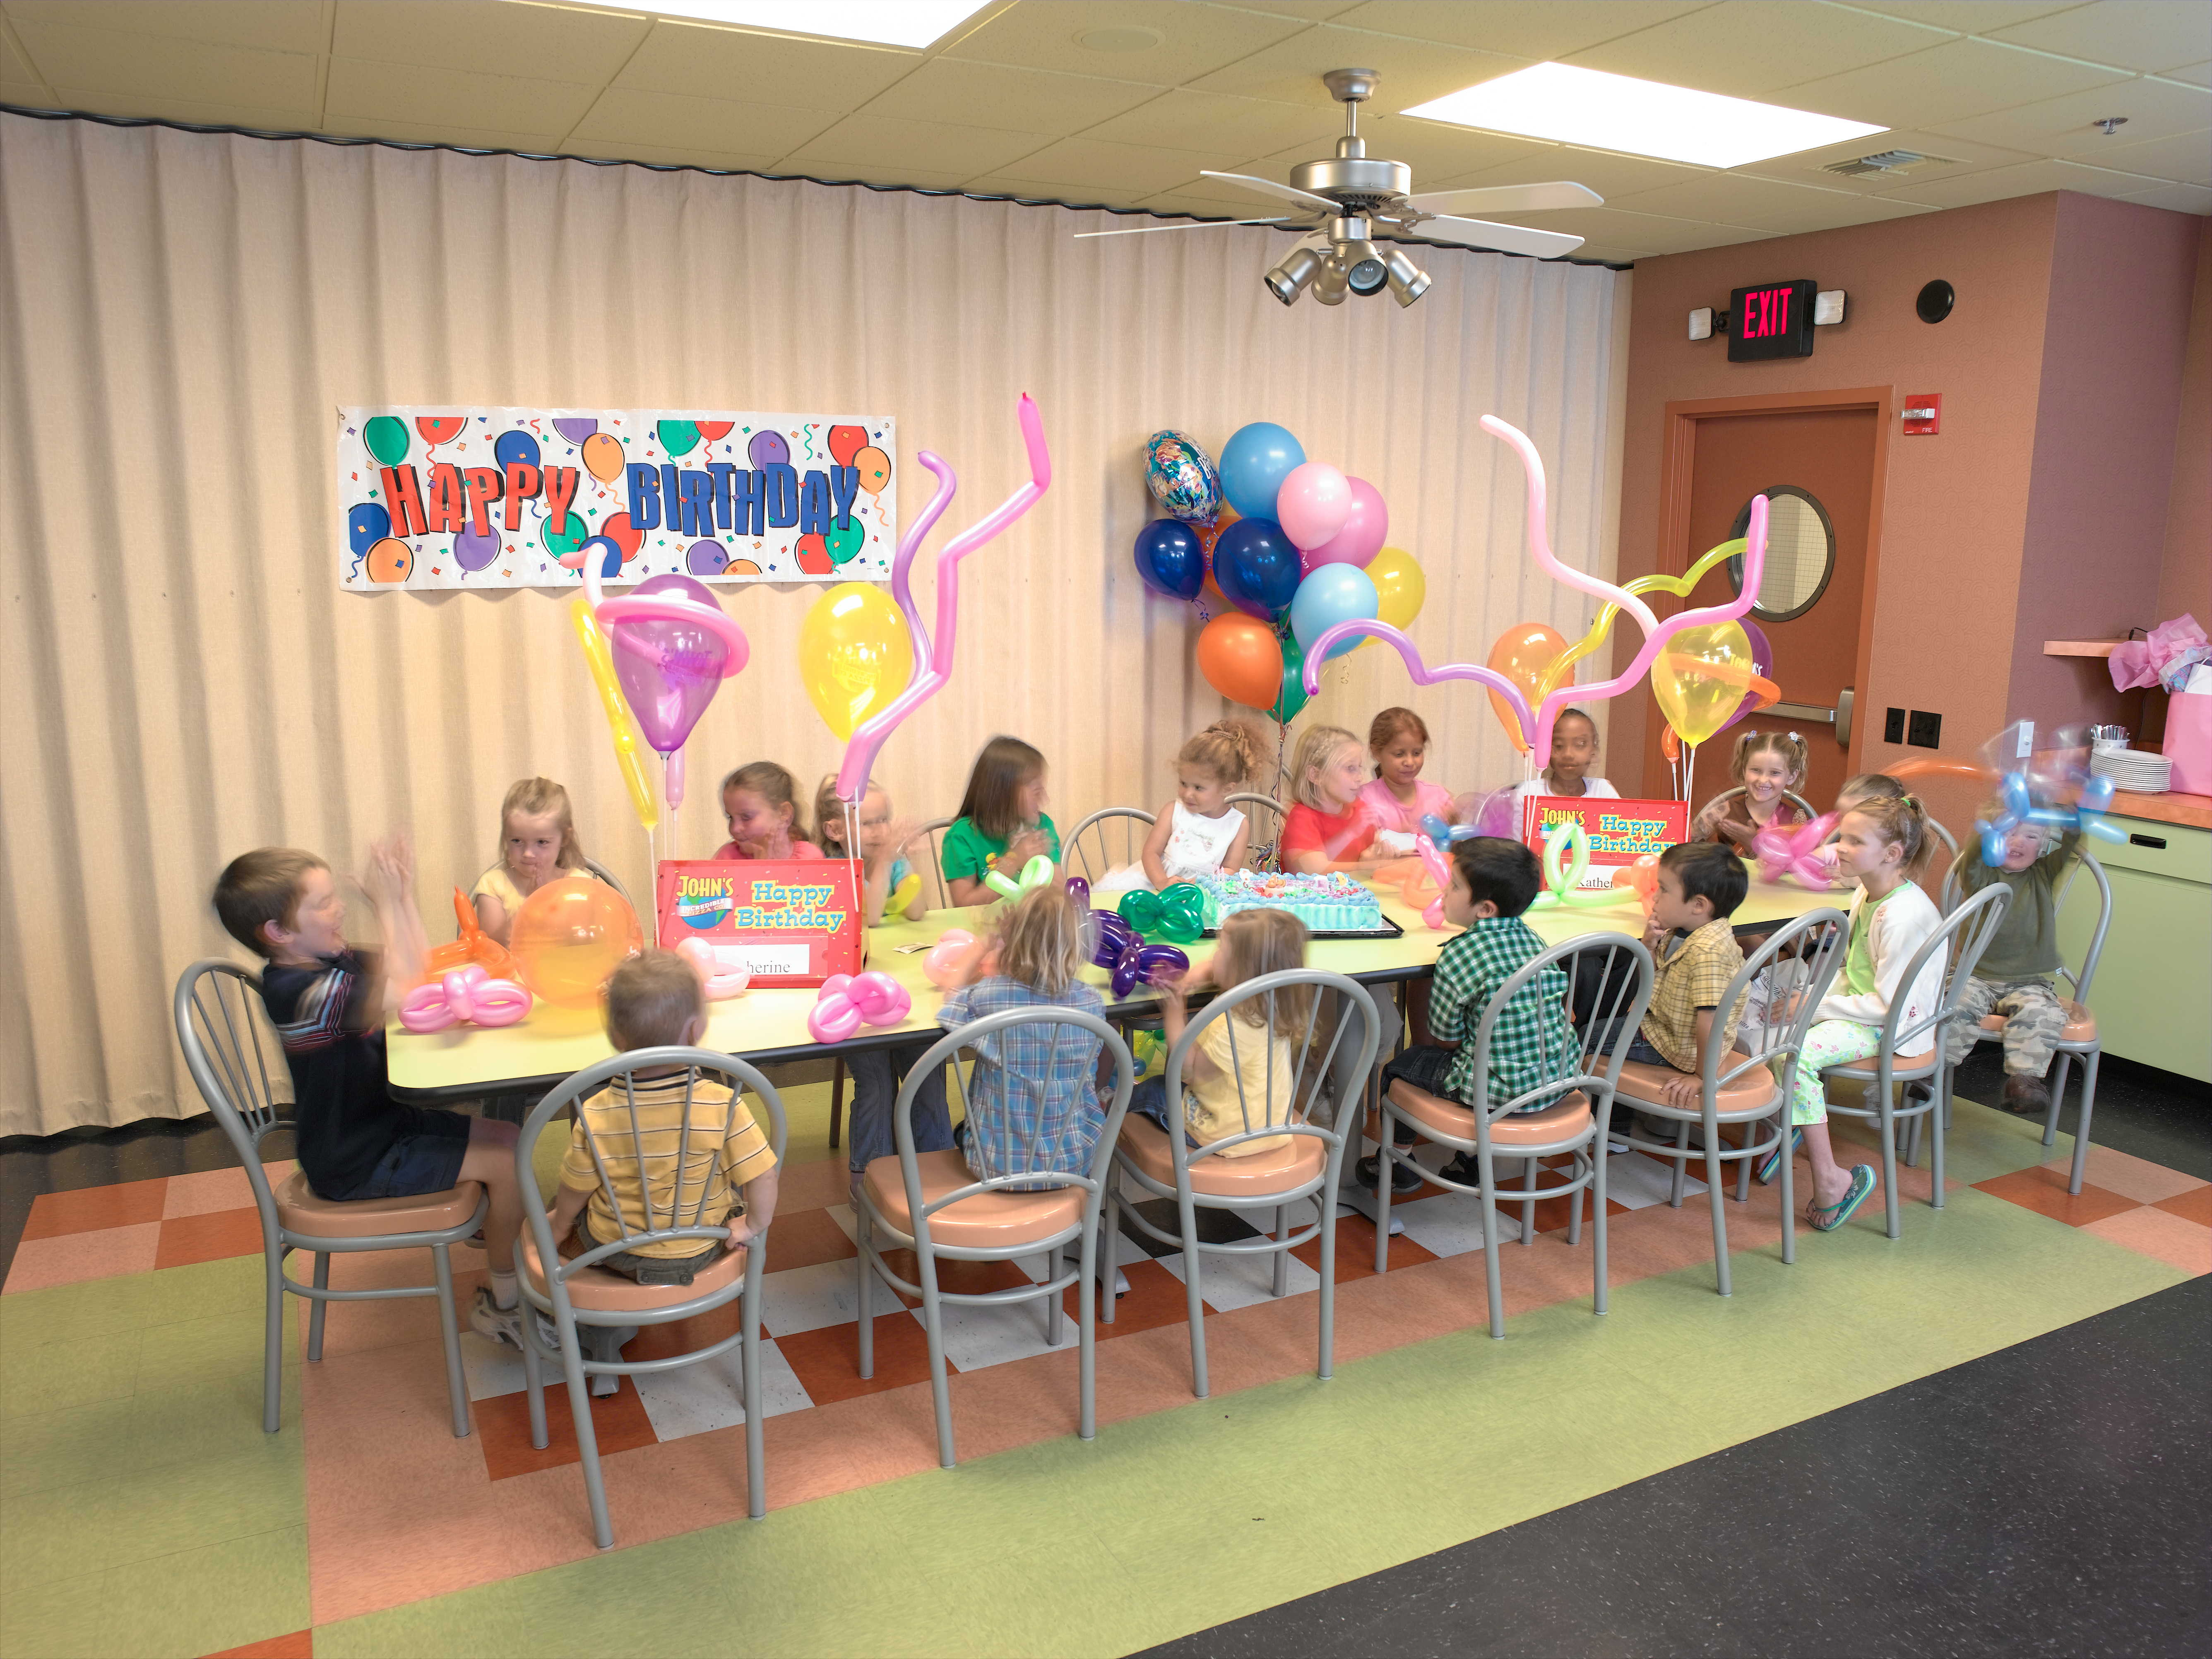 Five Birthday Party Ideas For Older Kids